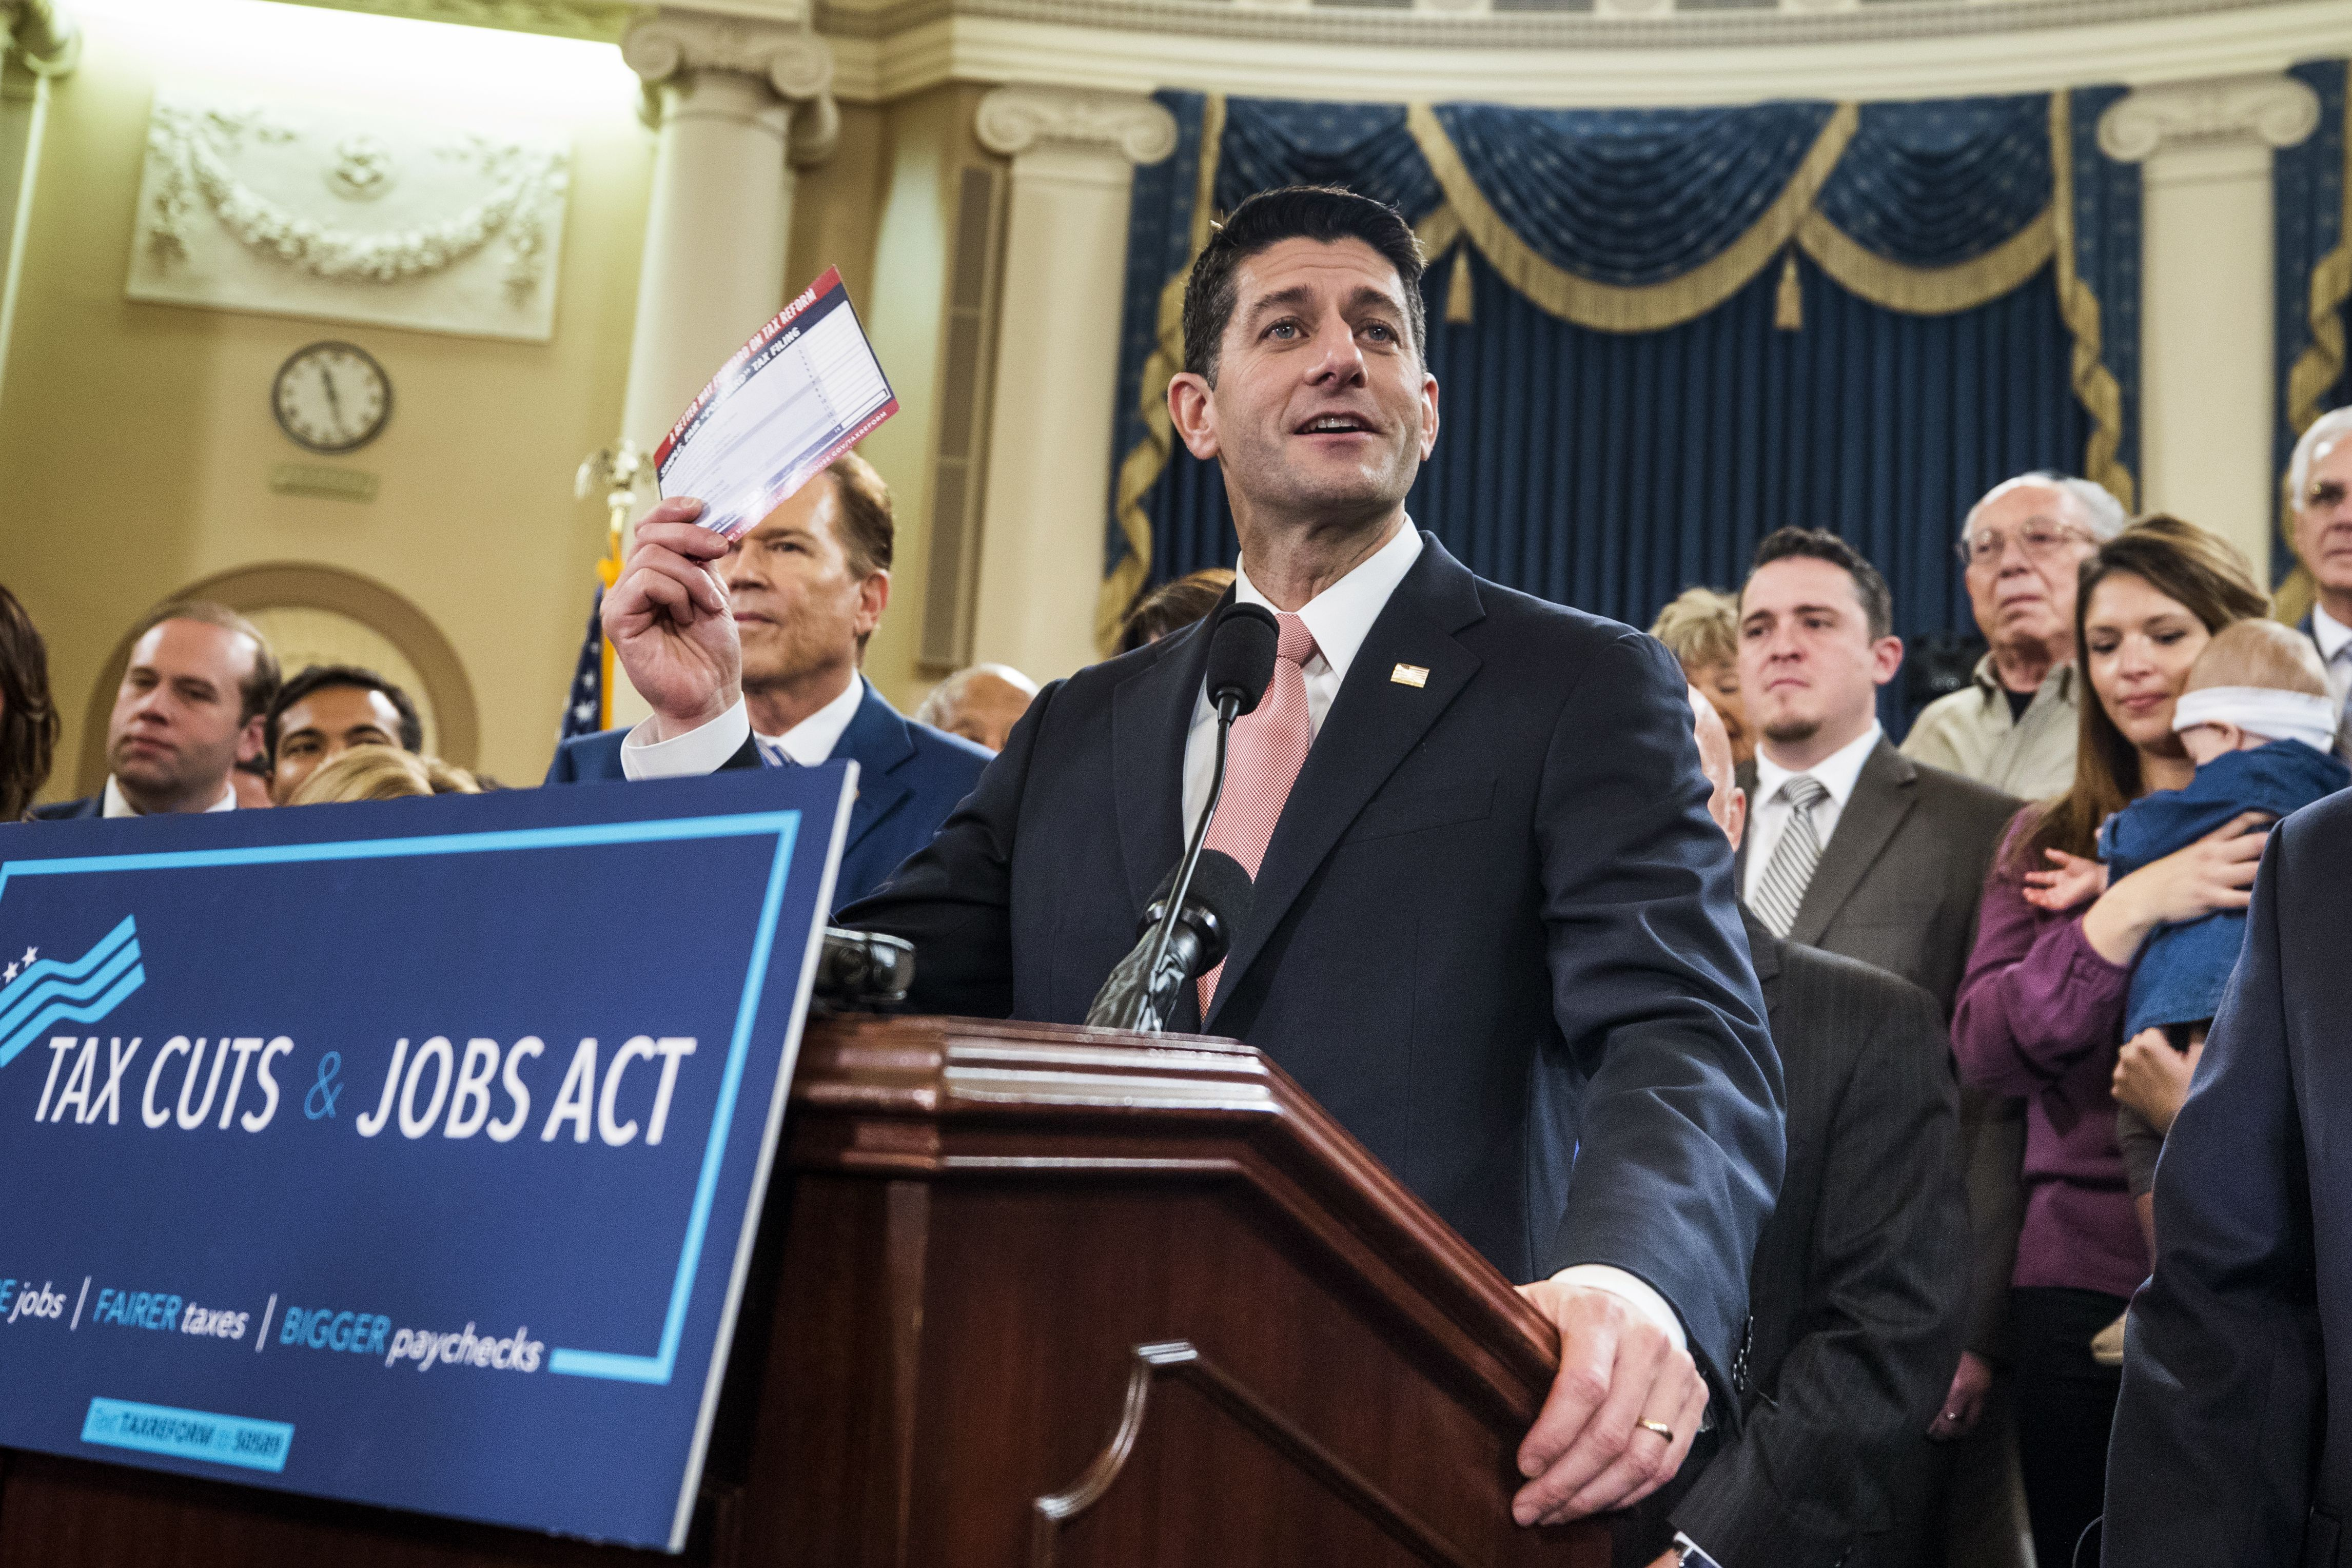 Republican Speaker of the House Paul Ryan (C), along with other House Republicans, speaks about the GOP tax overhaul in the Longworth House Office Building in Washington, DC, November 2, 2017. The plan seeks up to six trillion dollars in tax cuts over 10 years.